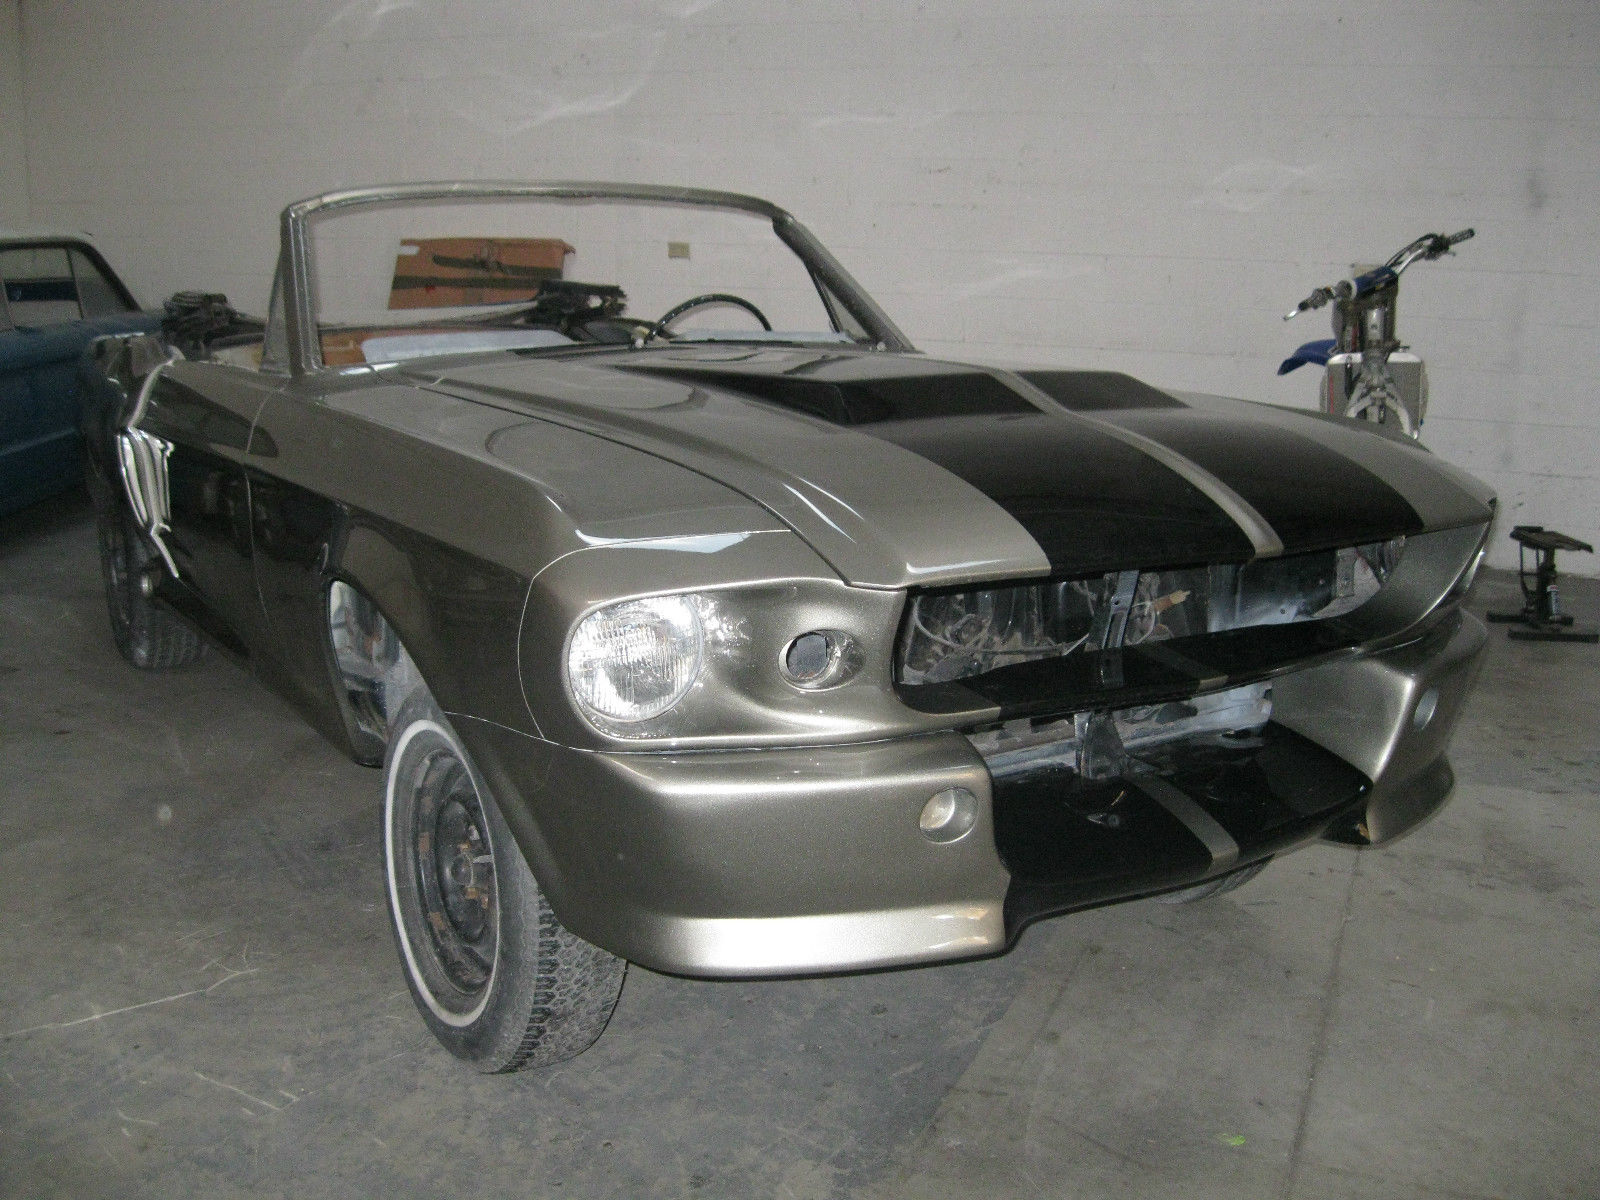 1967 Eleanor Mustang Project Car For Sale In Carlsbad